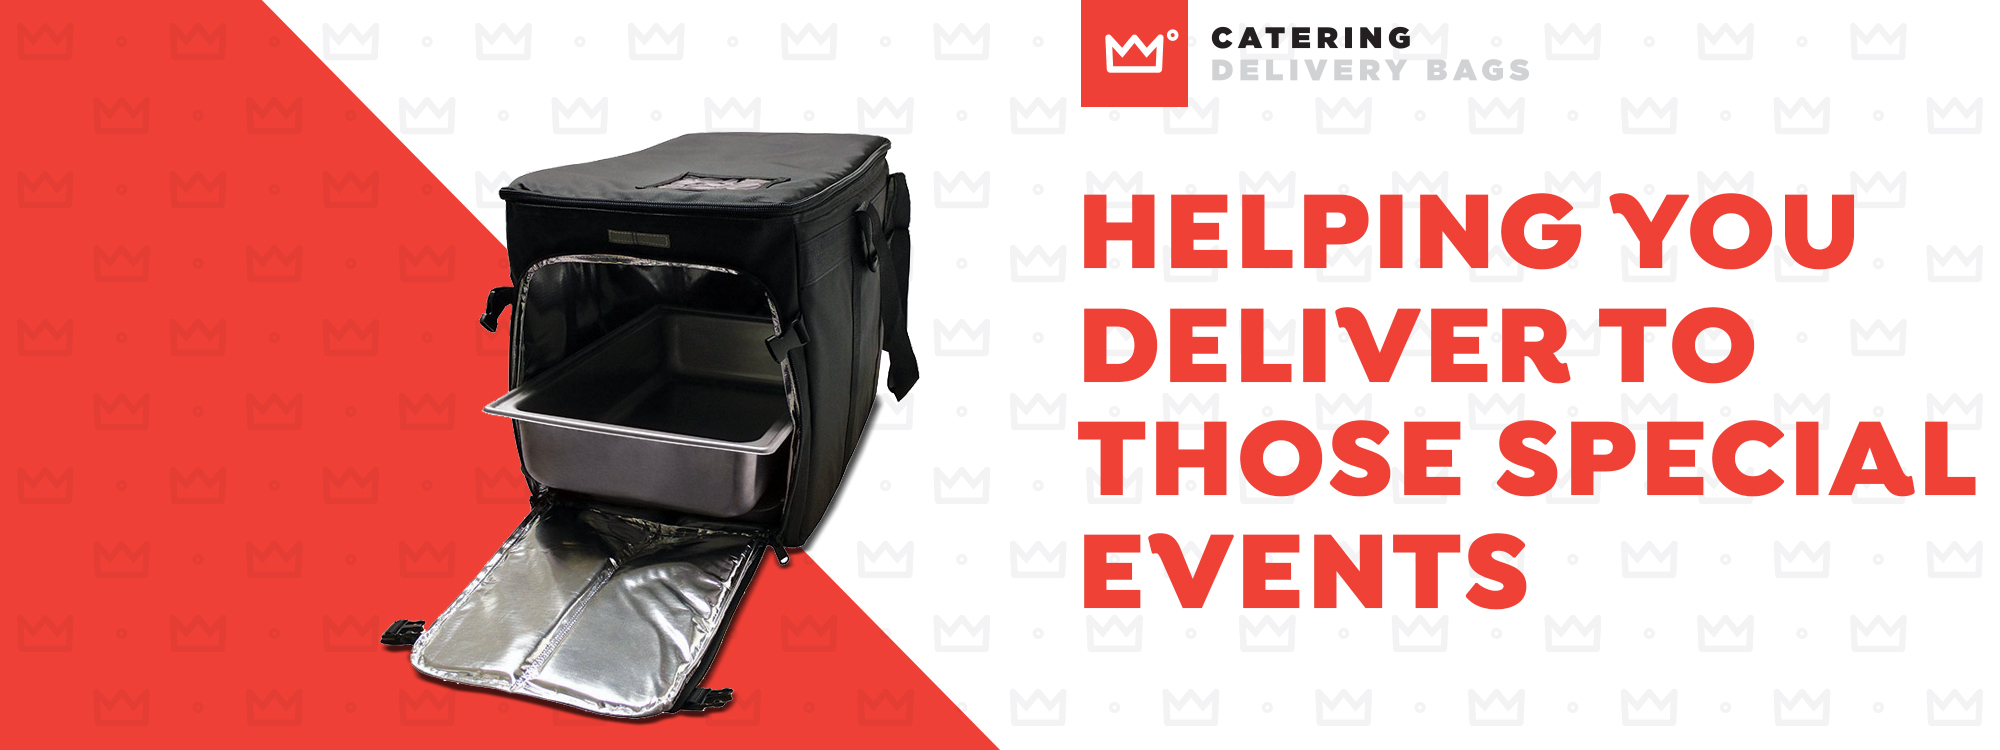 Catering Delivery Bags